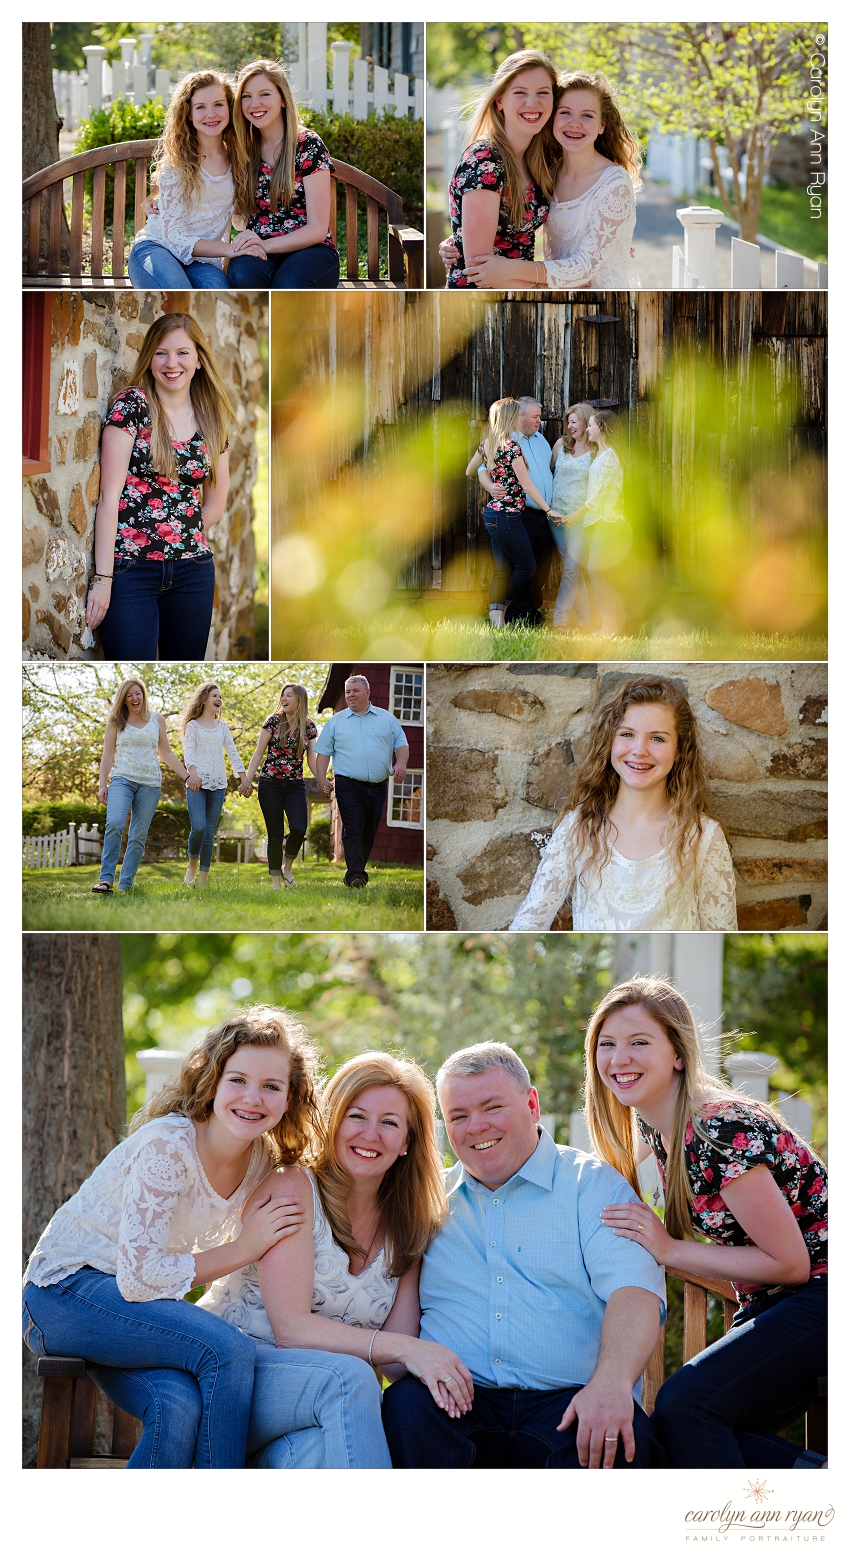 North Carolina Family Photographer, Carolyn Ann Ryan, photographs clients on location in a historic village.